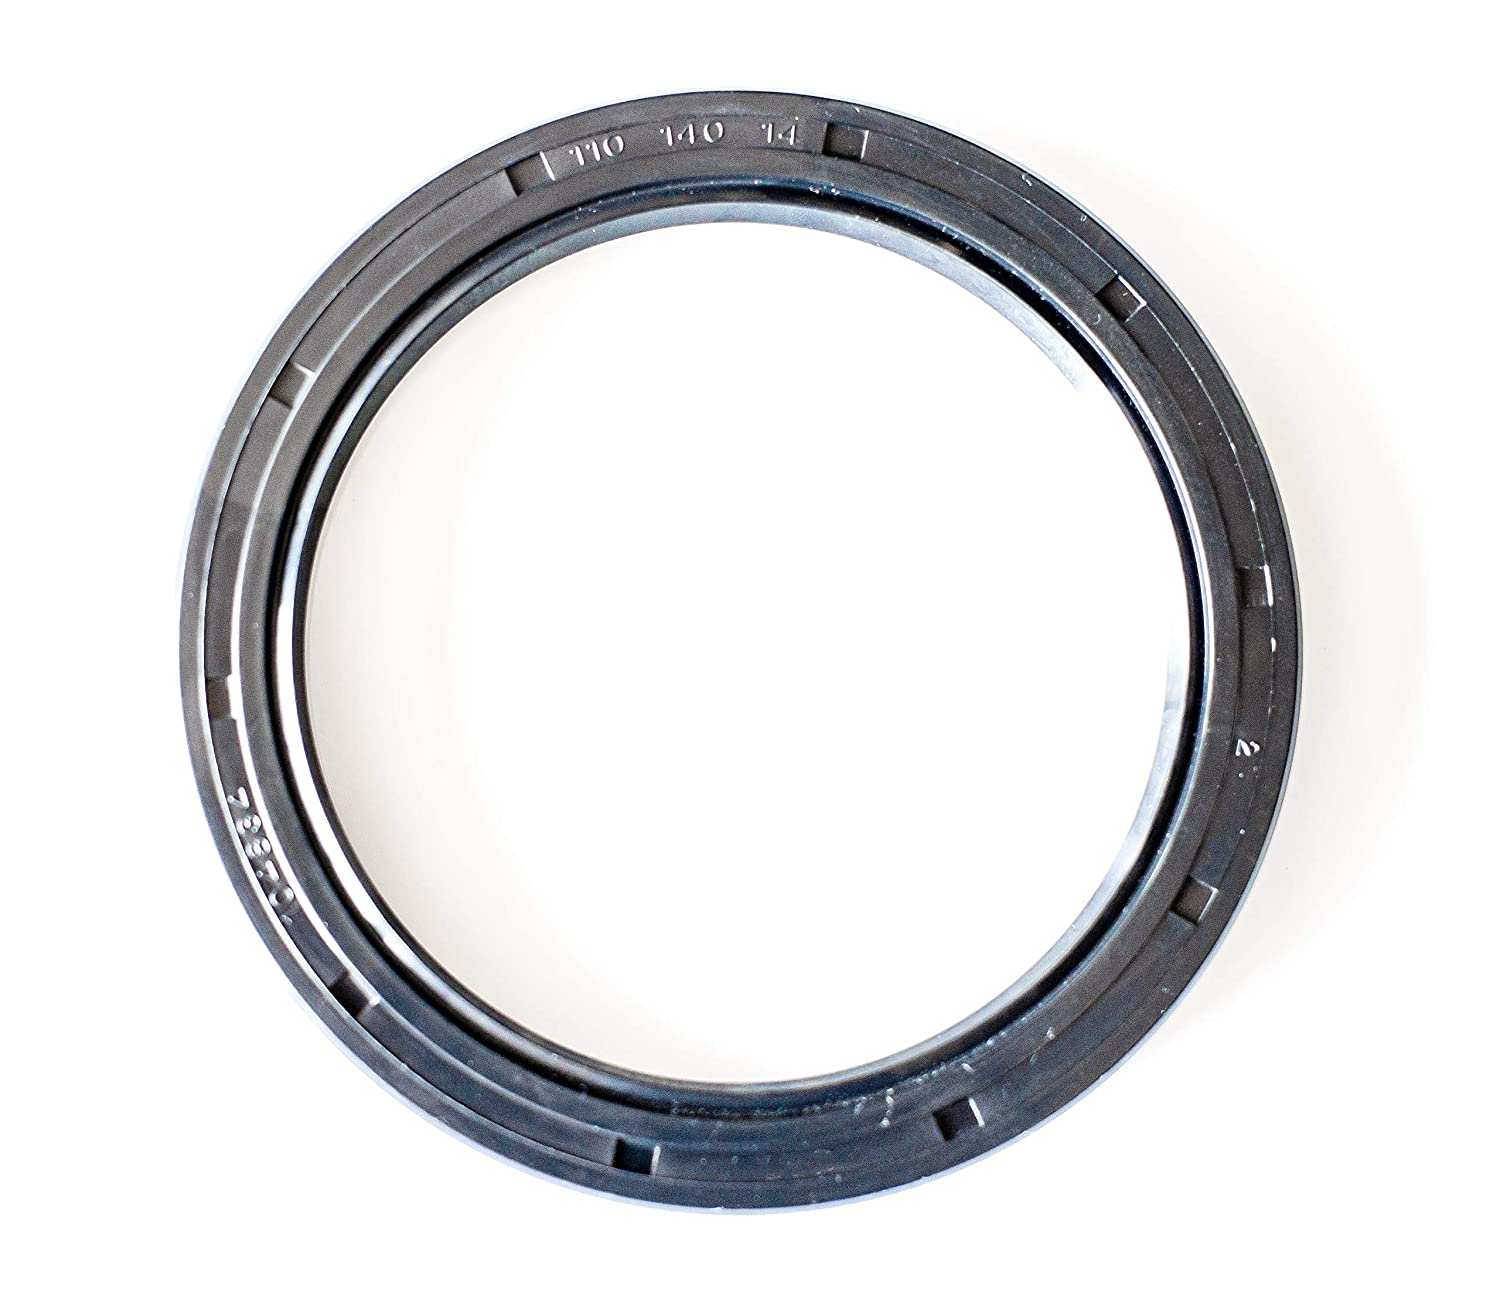 4.331x5.512x0.551 110mmX140mmX14mm Oil Seal 110X140X14 Oil Seal Grease Seal TC |EAI Double Lip w//Garter Spring Single Metal Case w//Nitrile Rubber Coating